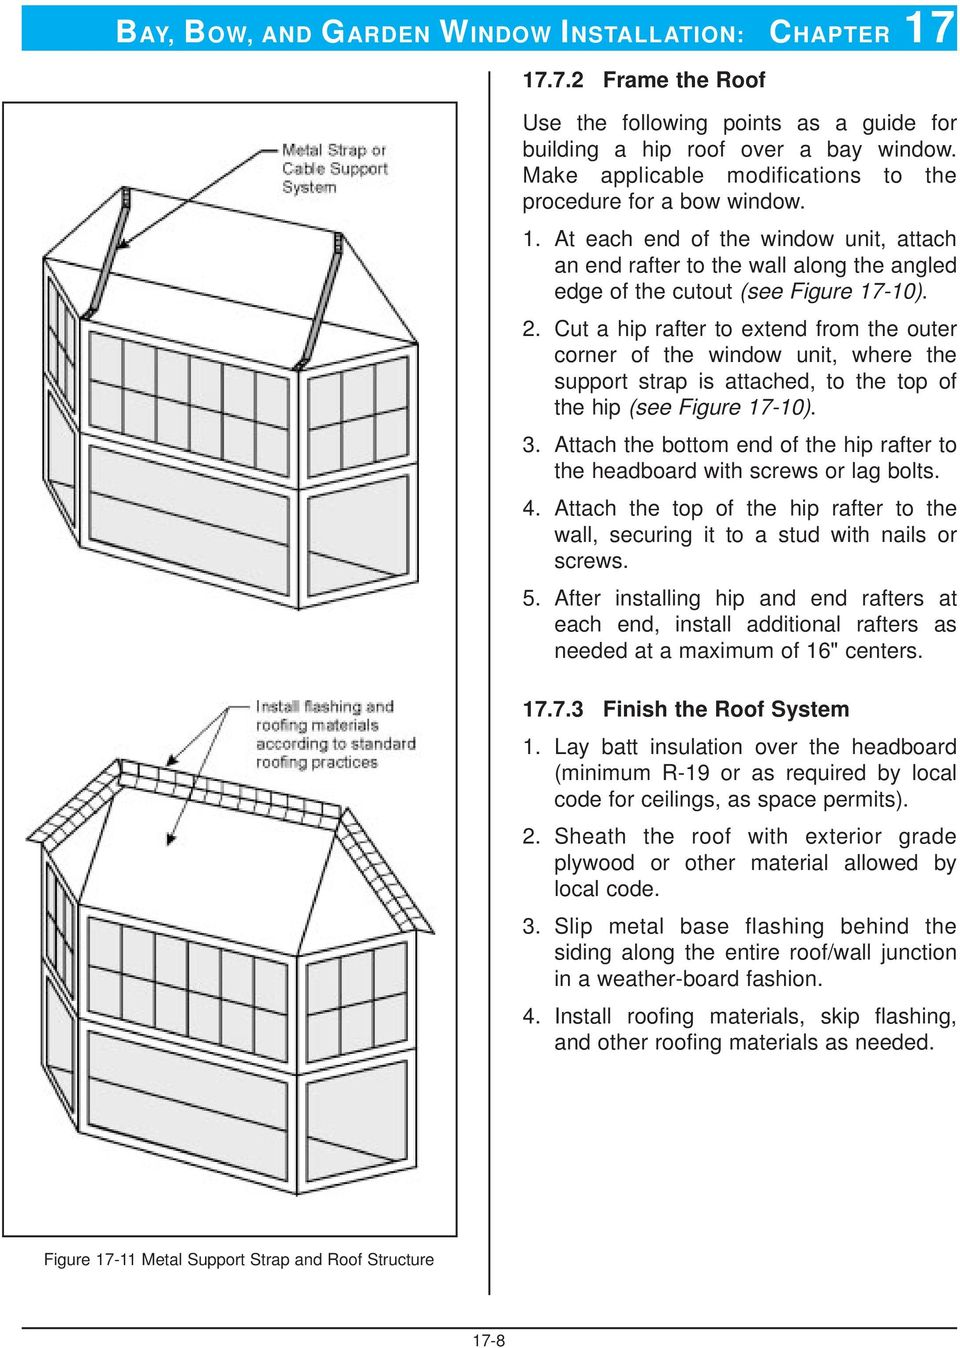 Cut a hip rafter to extend from the outer corner of the window unit, where the support strap is attached, to the top of the hip (see Figure 17-10). 3.